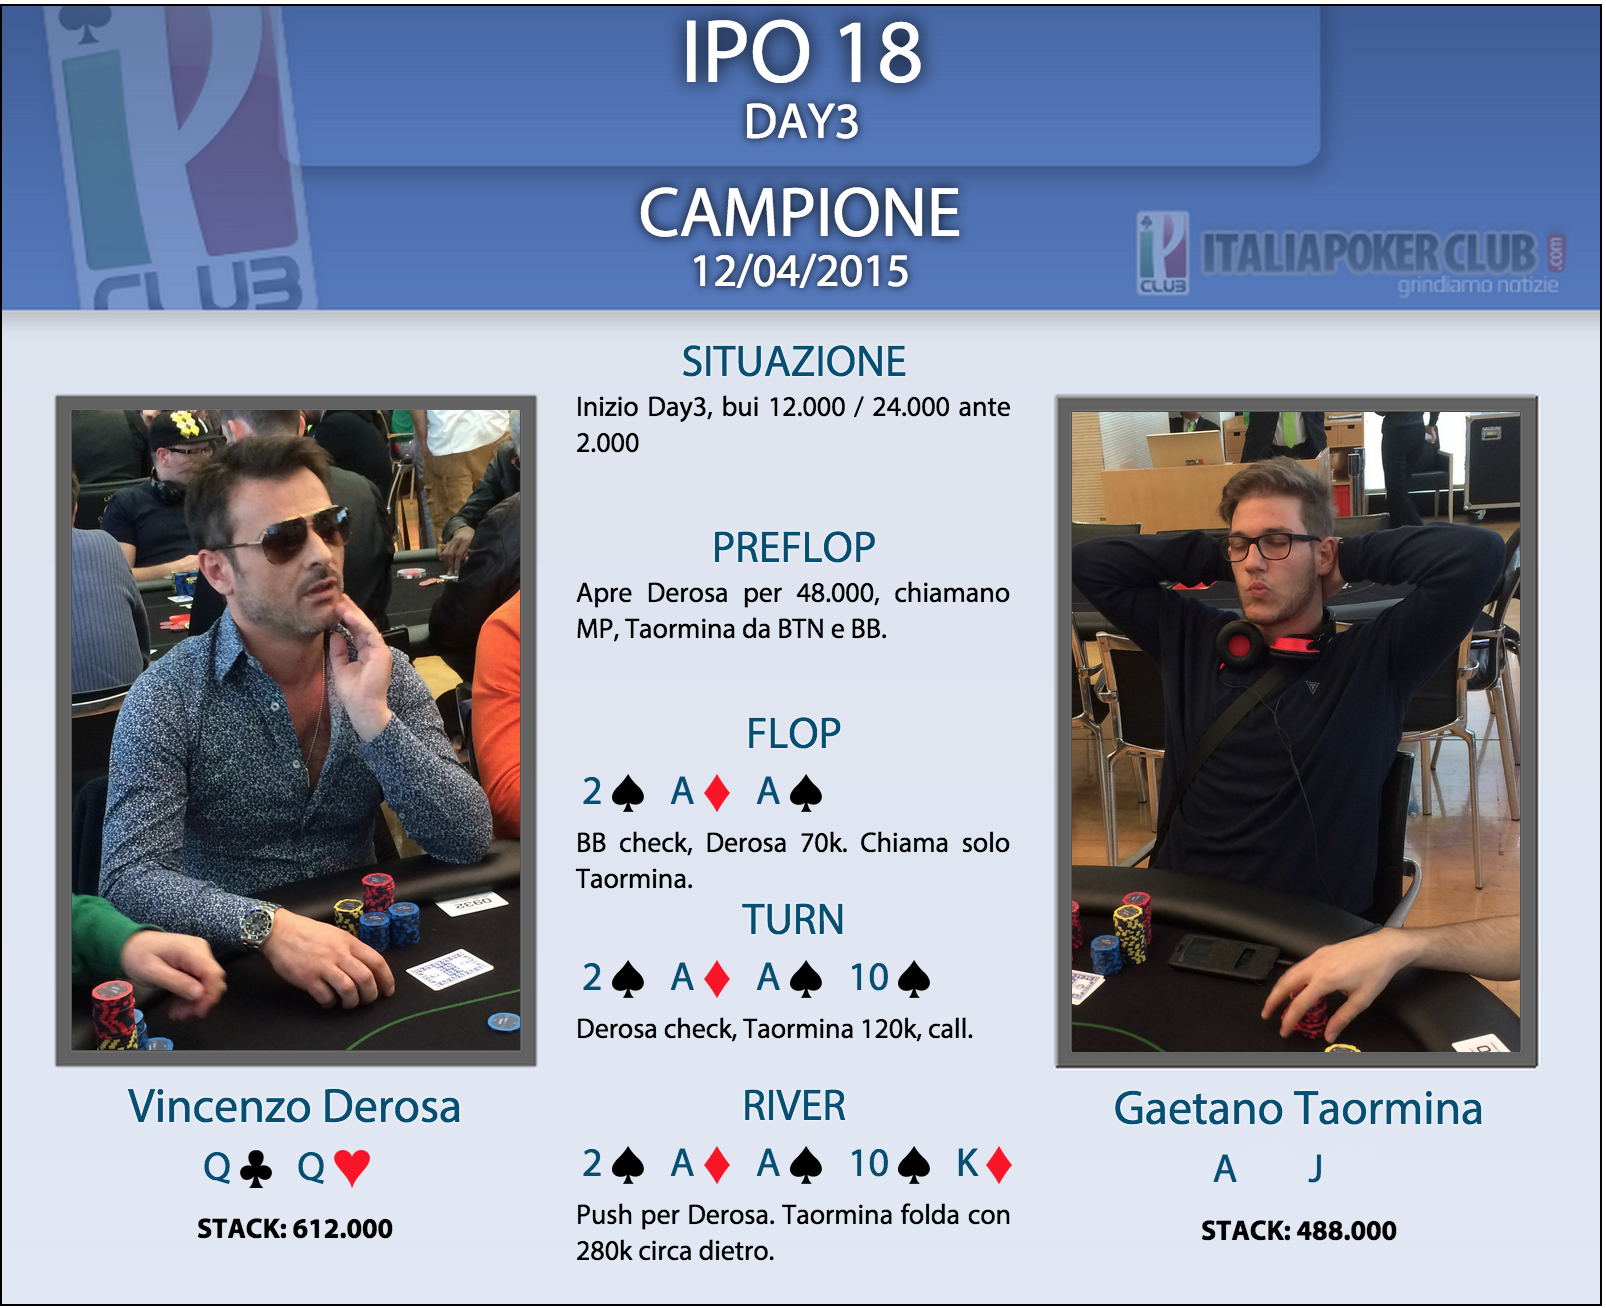 Thinking process poker Gaetano Taormina vs Vincenzo Derosa